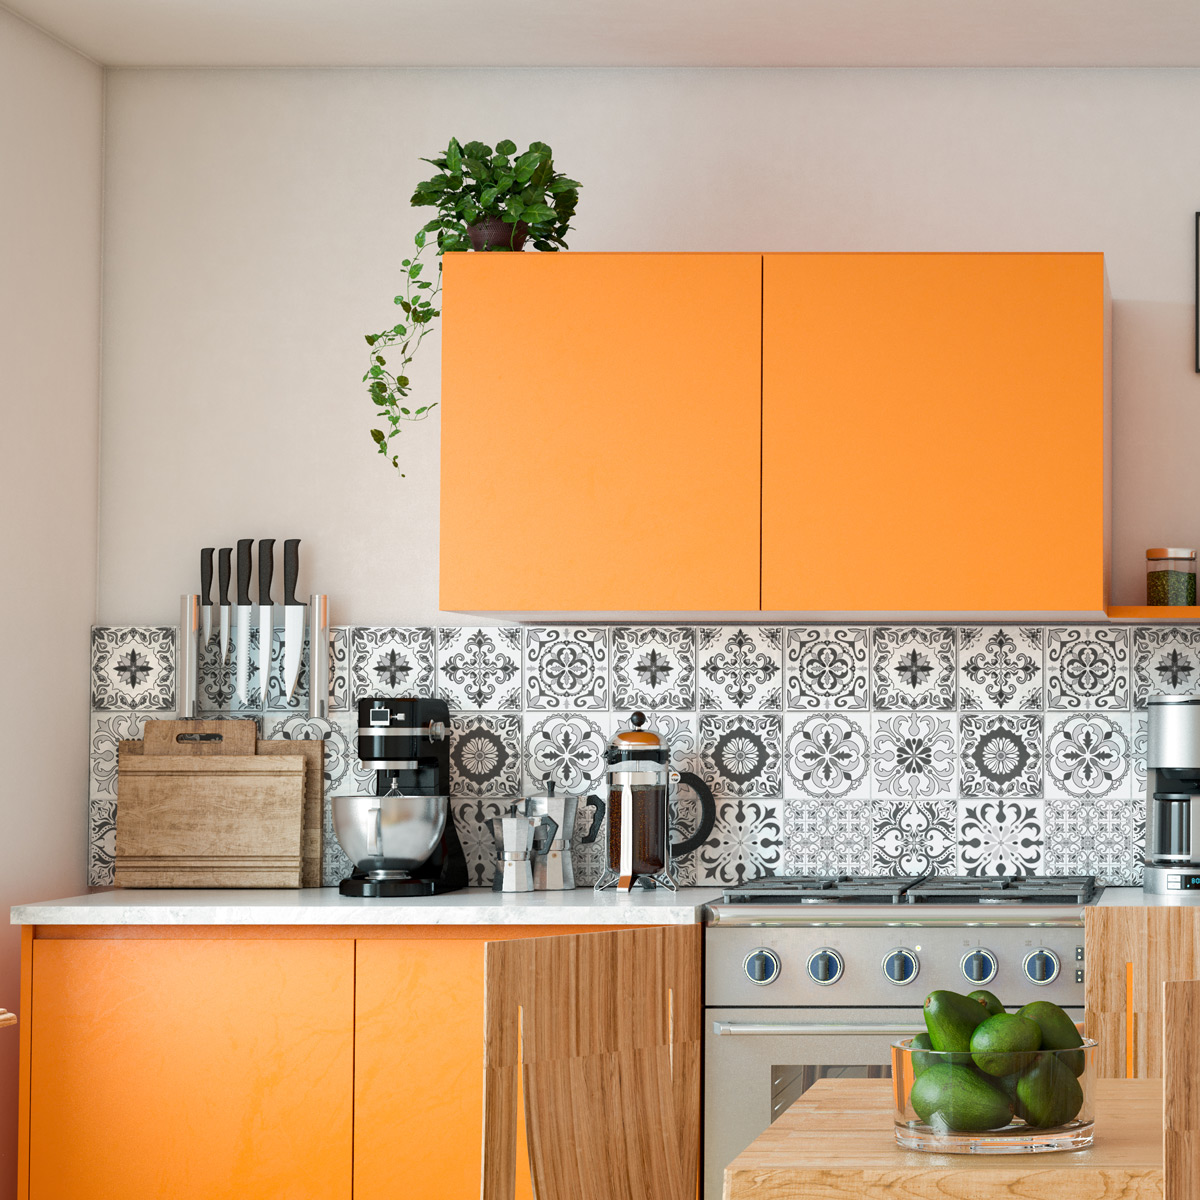 9 stickers carrelages azulejos christoph - STICKERS CUISINE Carrelages - Ambiance-sticker